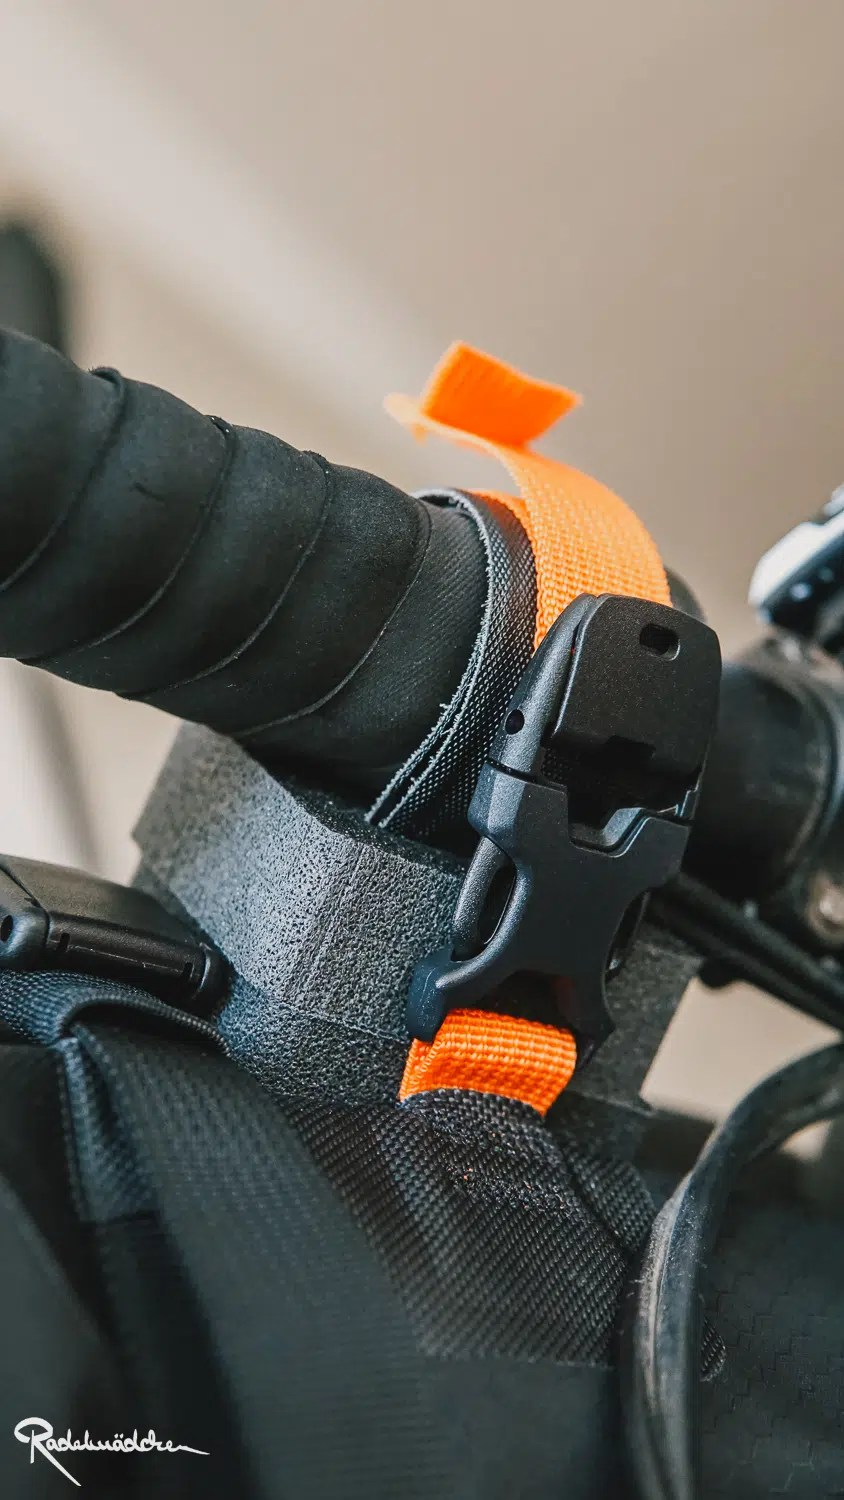 Ortlieb handlebar pack schnalle